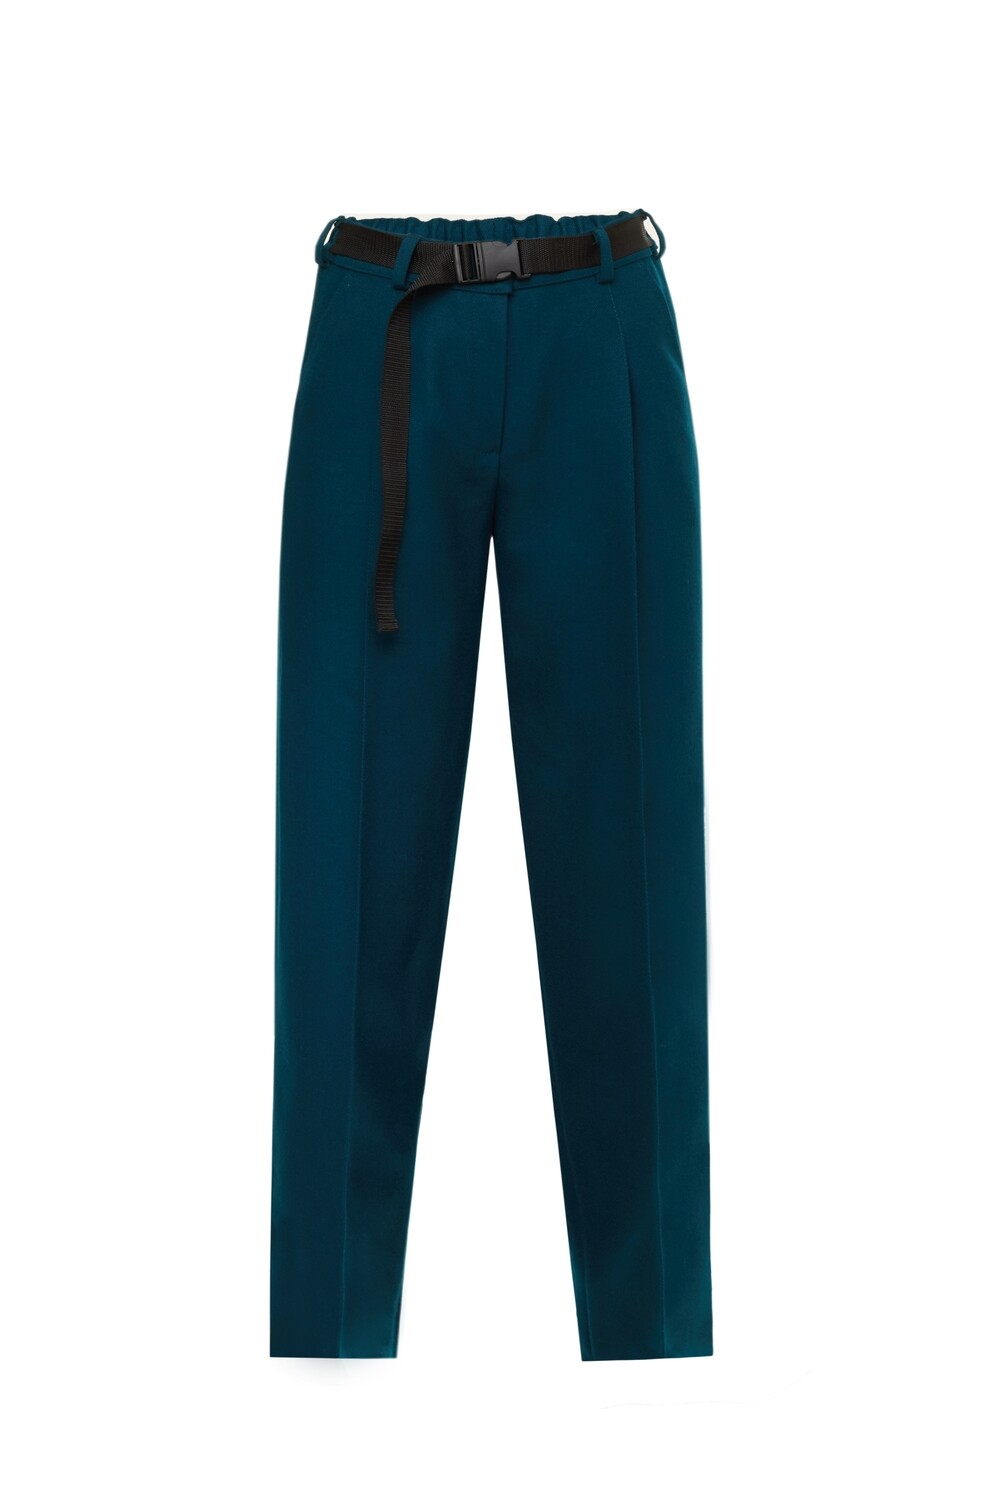 Emerald wool trousers